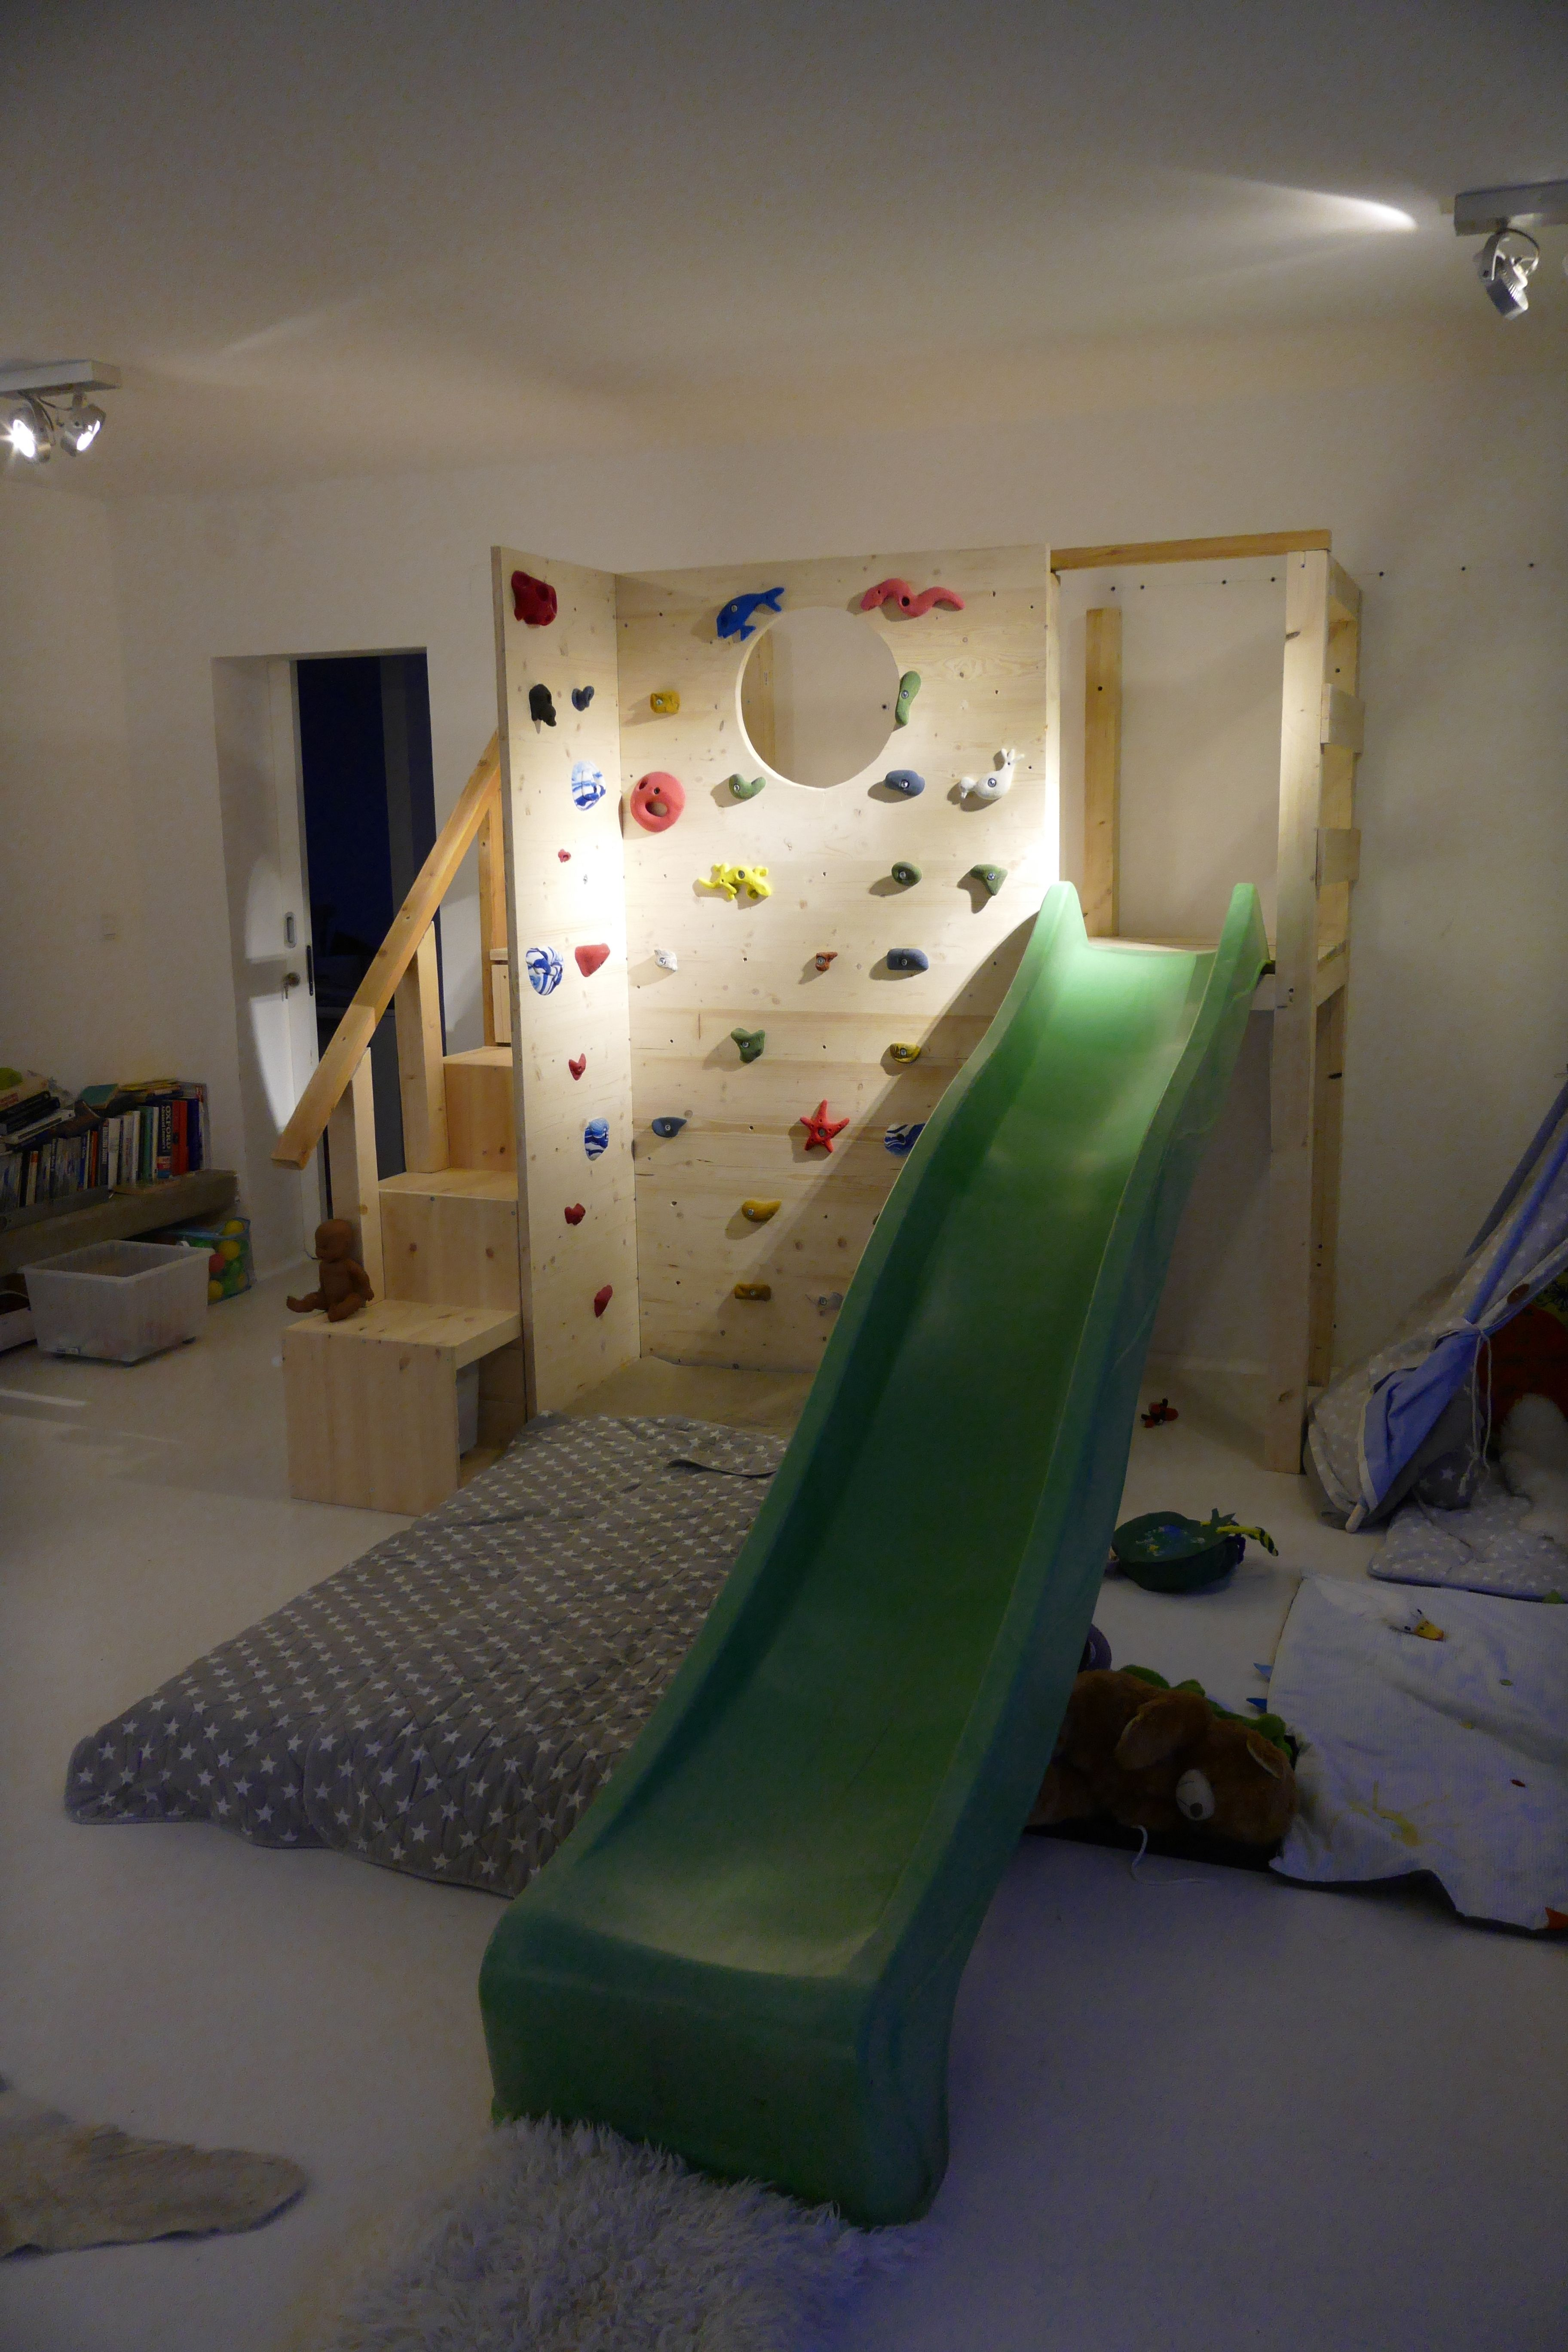 Ikea Hochbett Mit Rutsche Loft Bed With Climbing Wall And Slide #climbing #slide | Ikea Trofast, Ikea, Ikea Bed